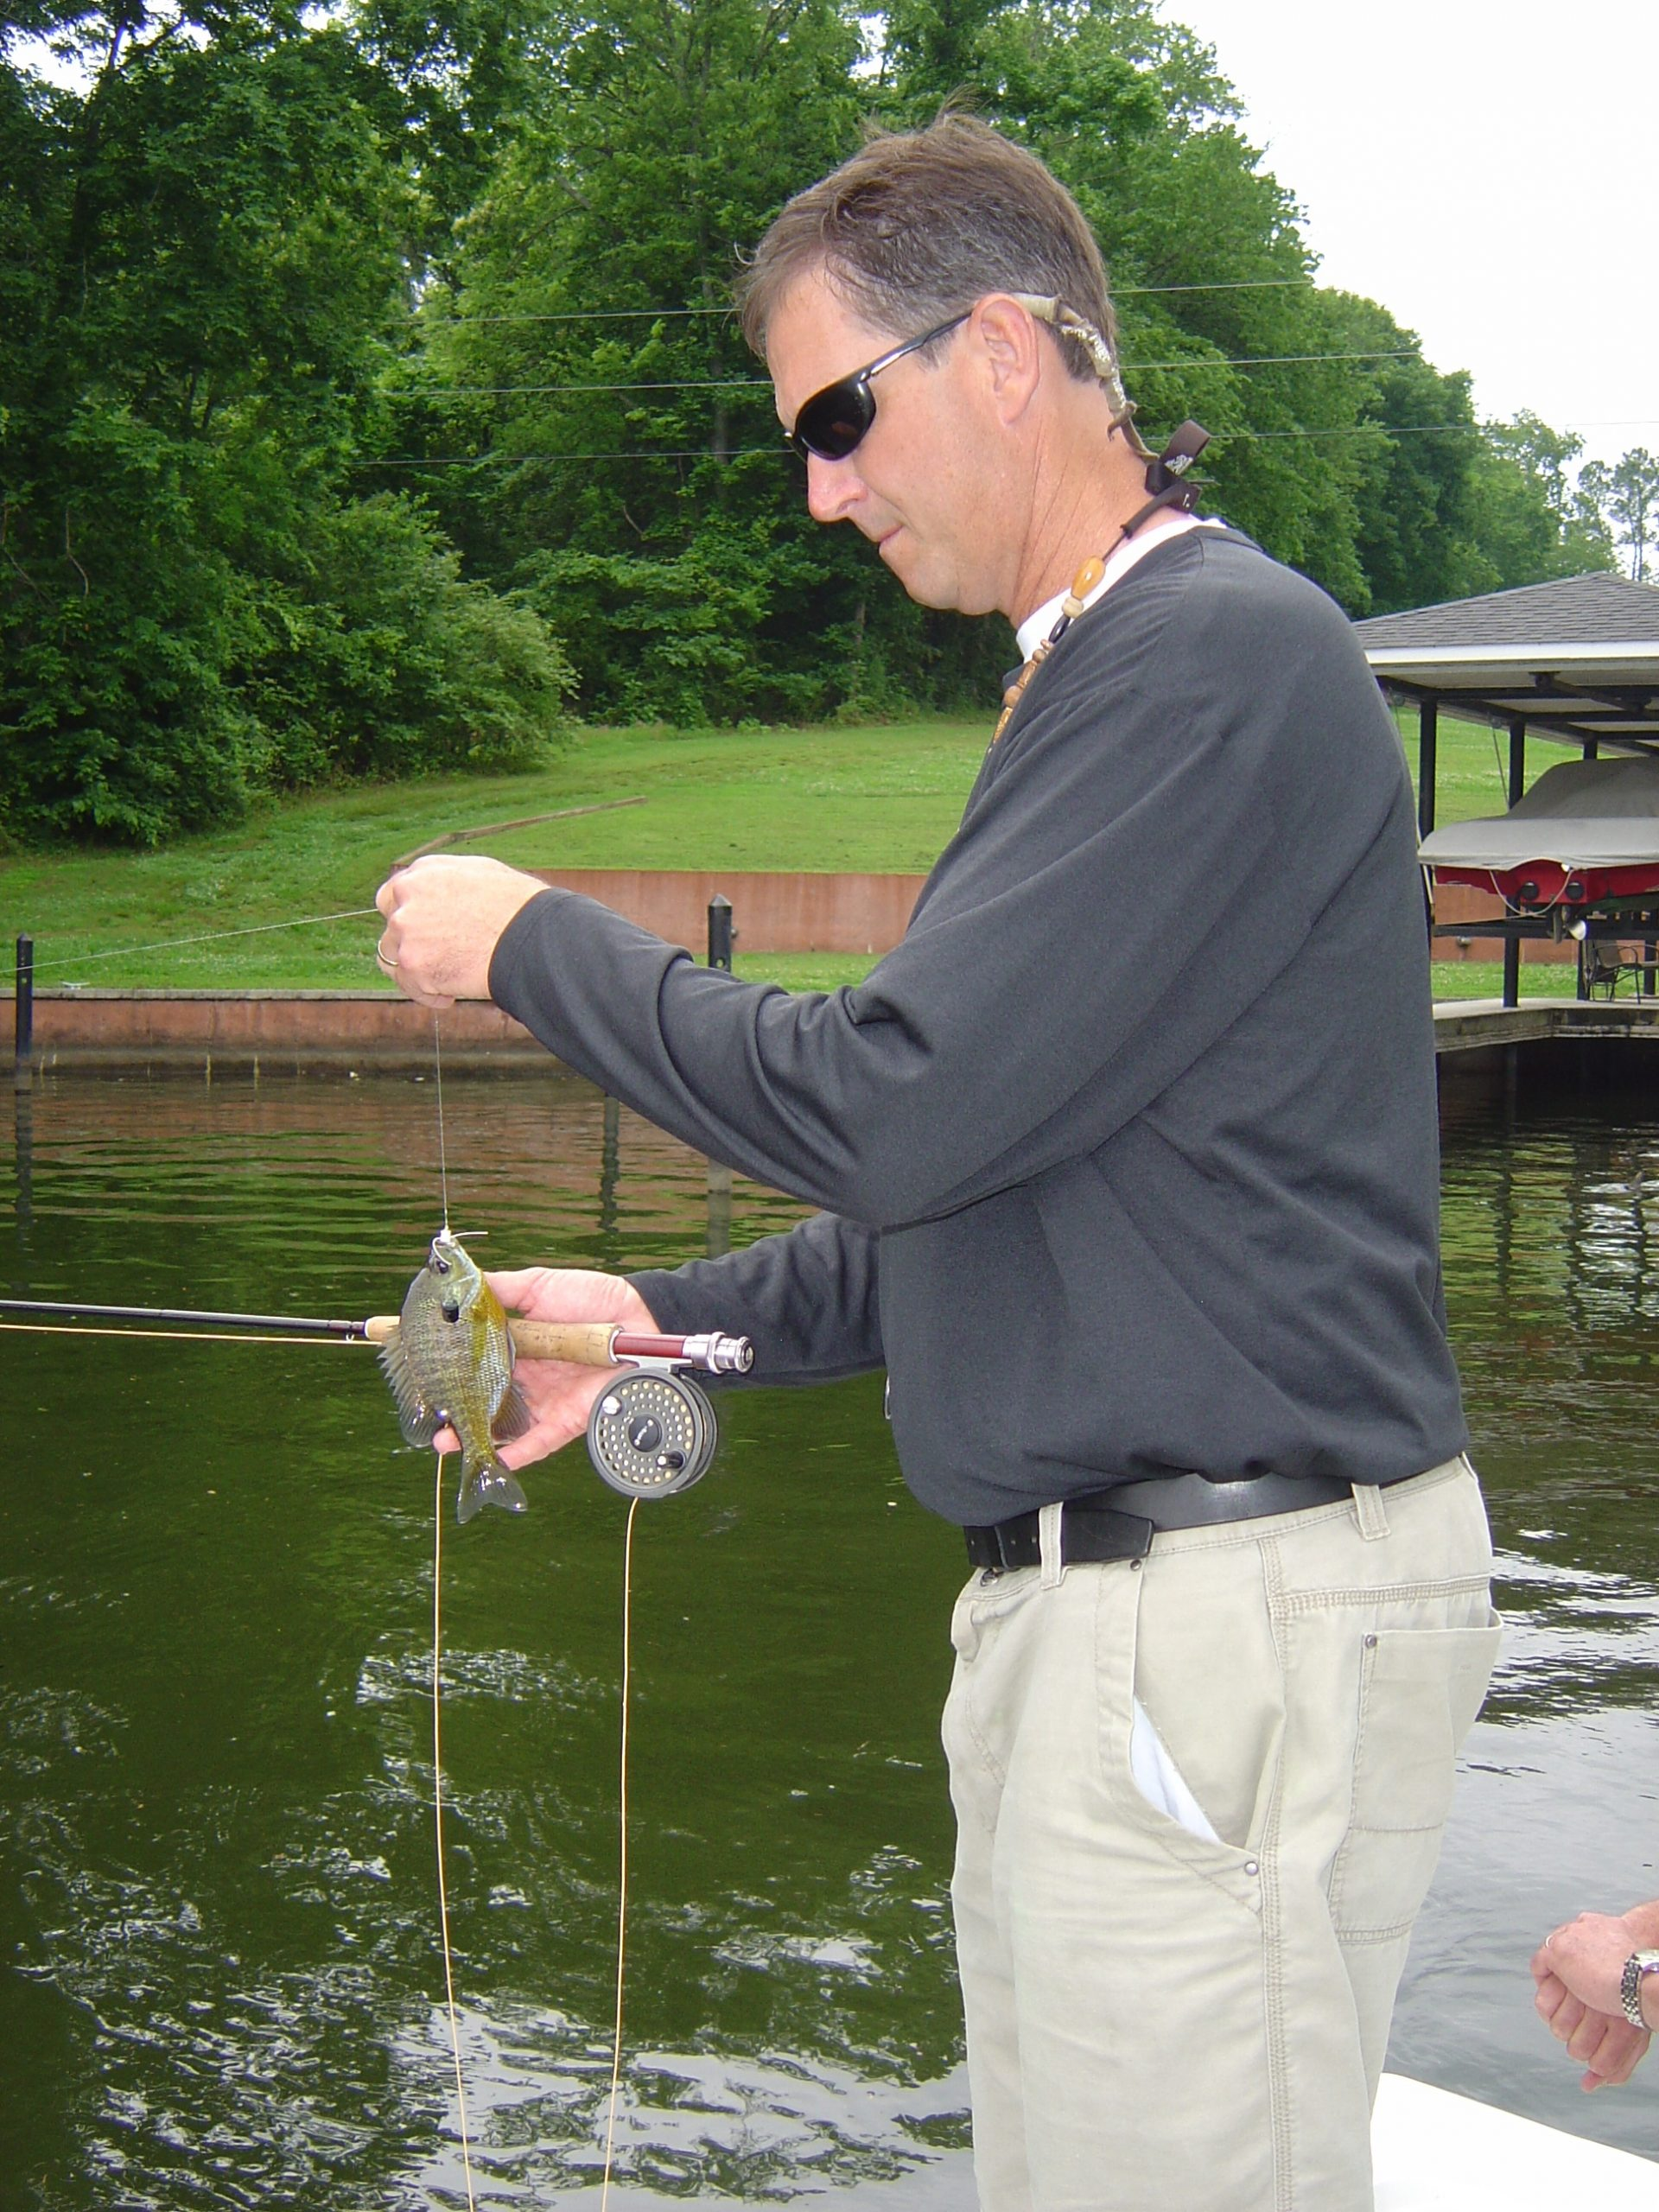 fly fishing poppers and popping bugs for bream